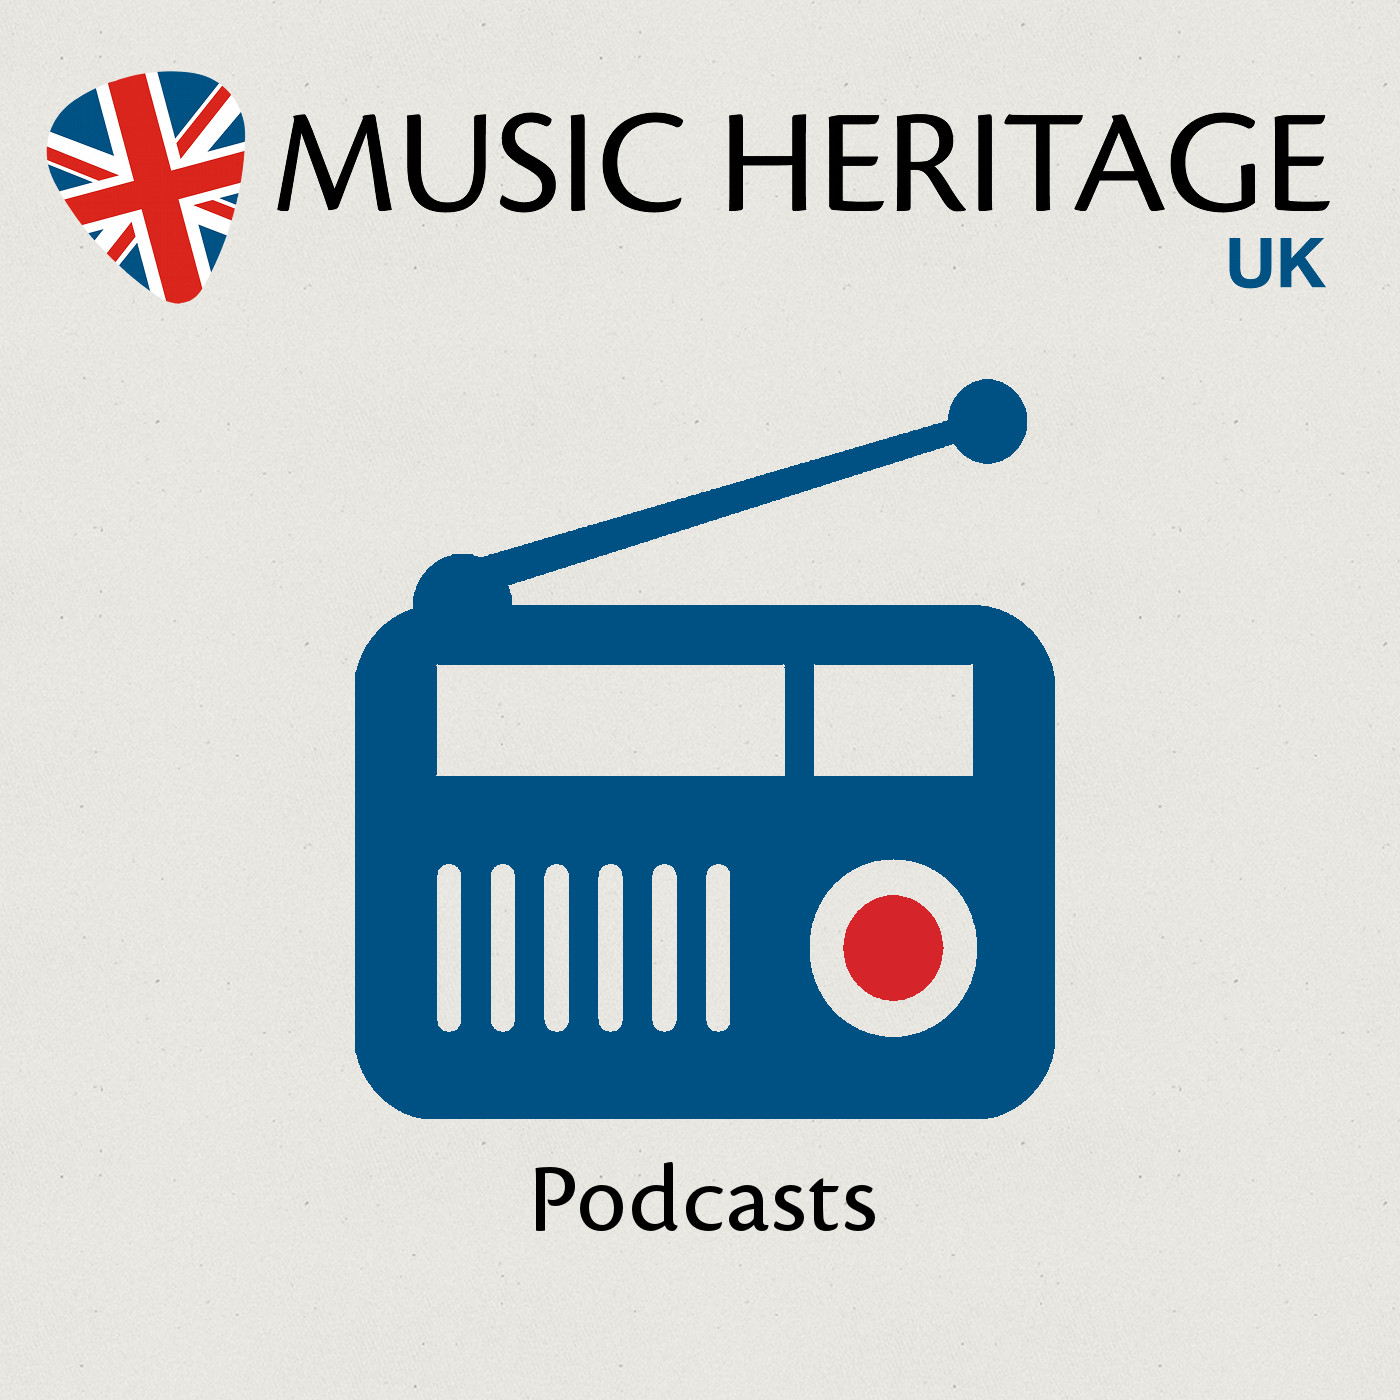 Music Heritage UK Podcast